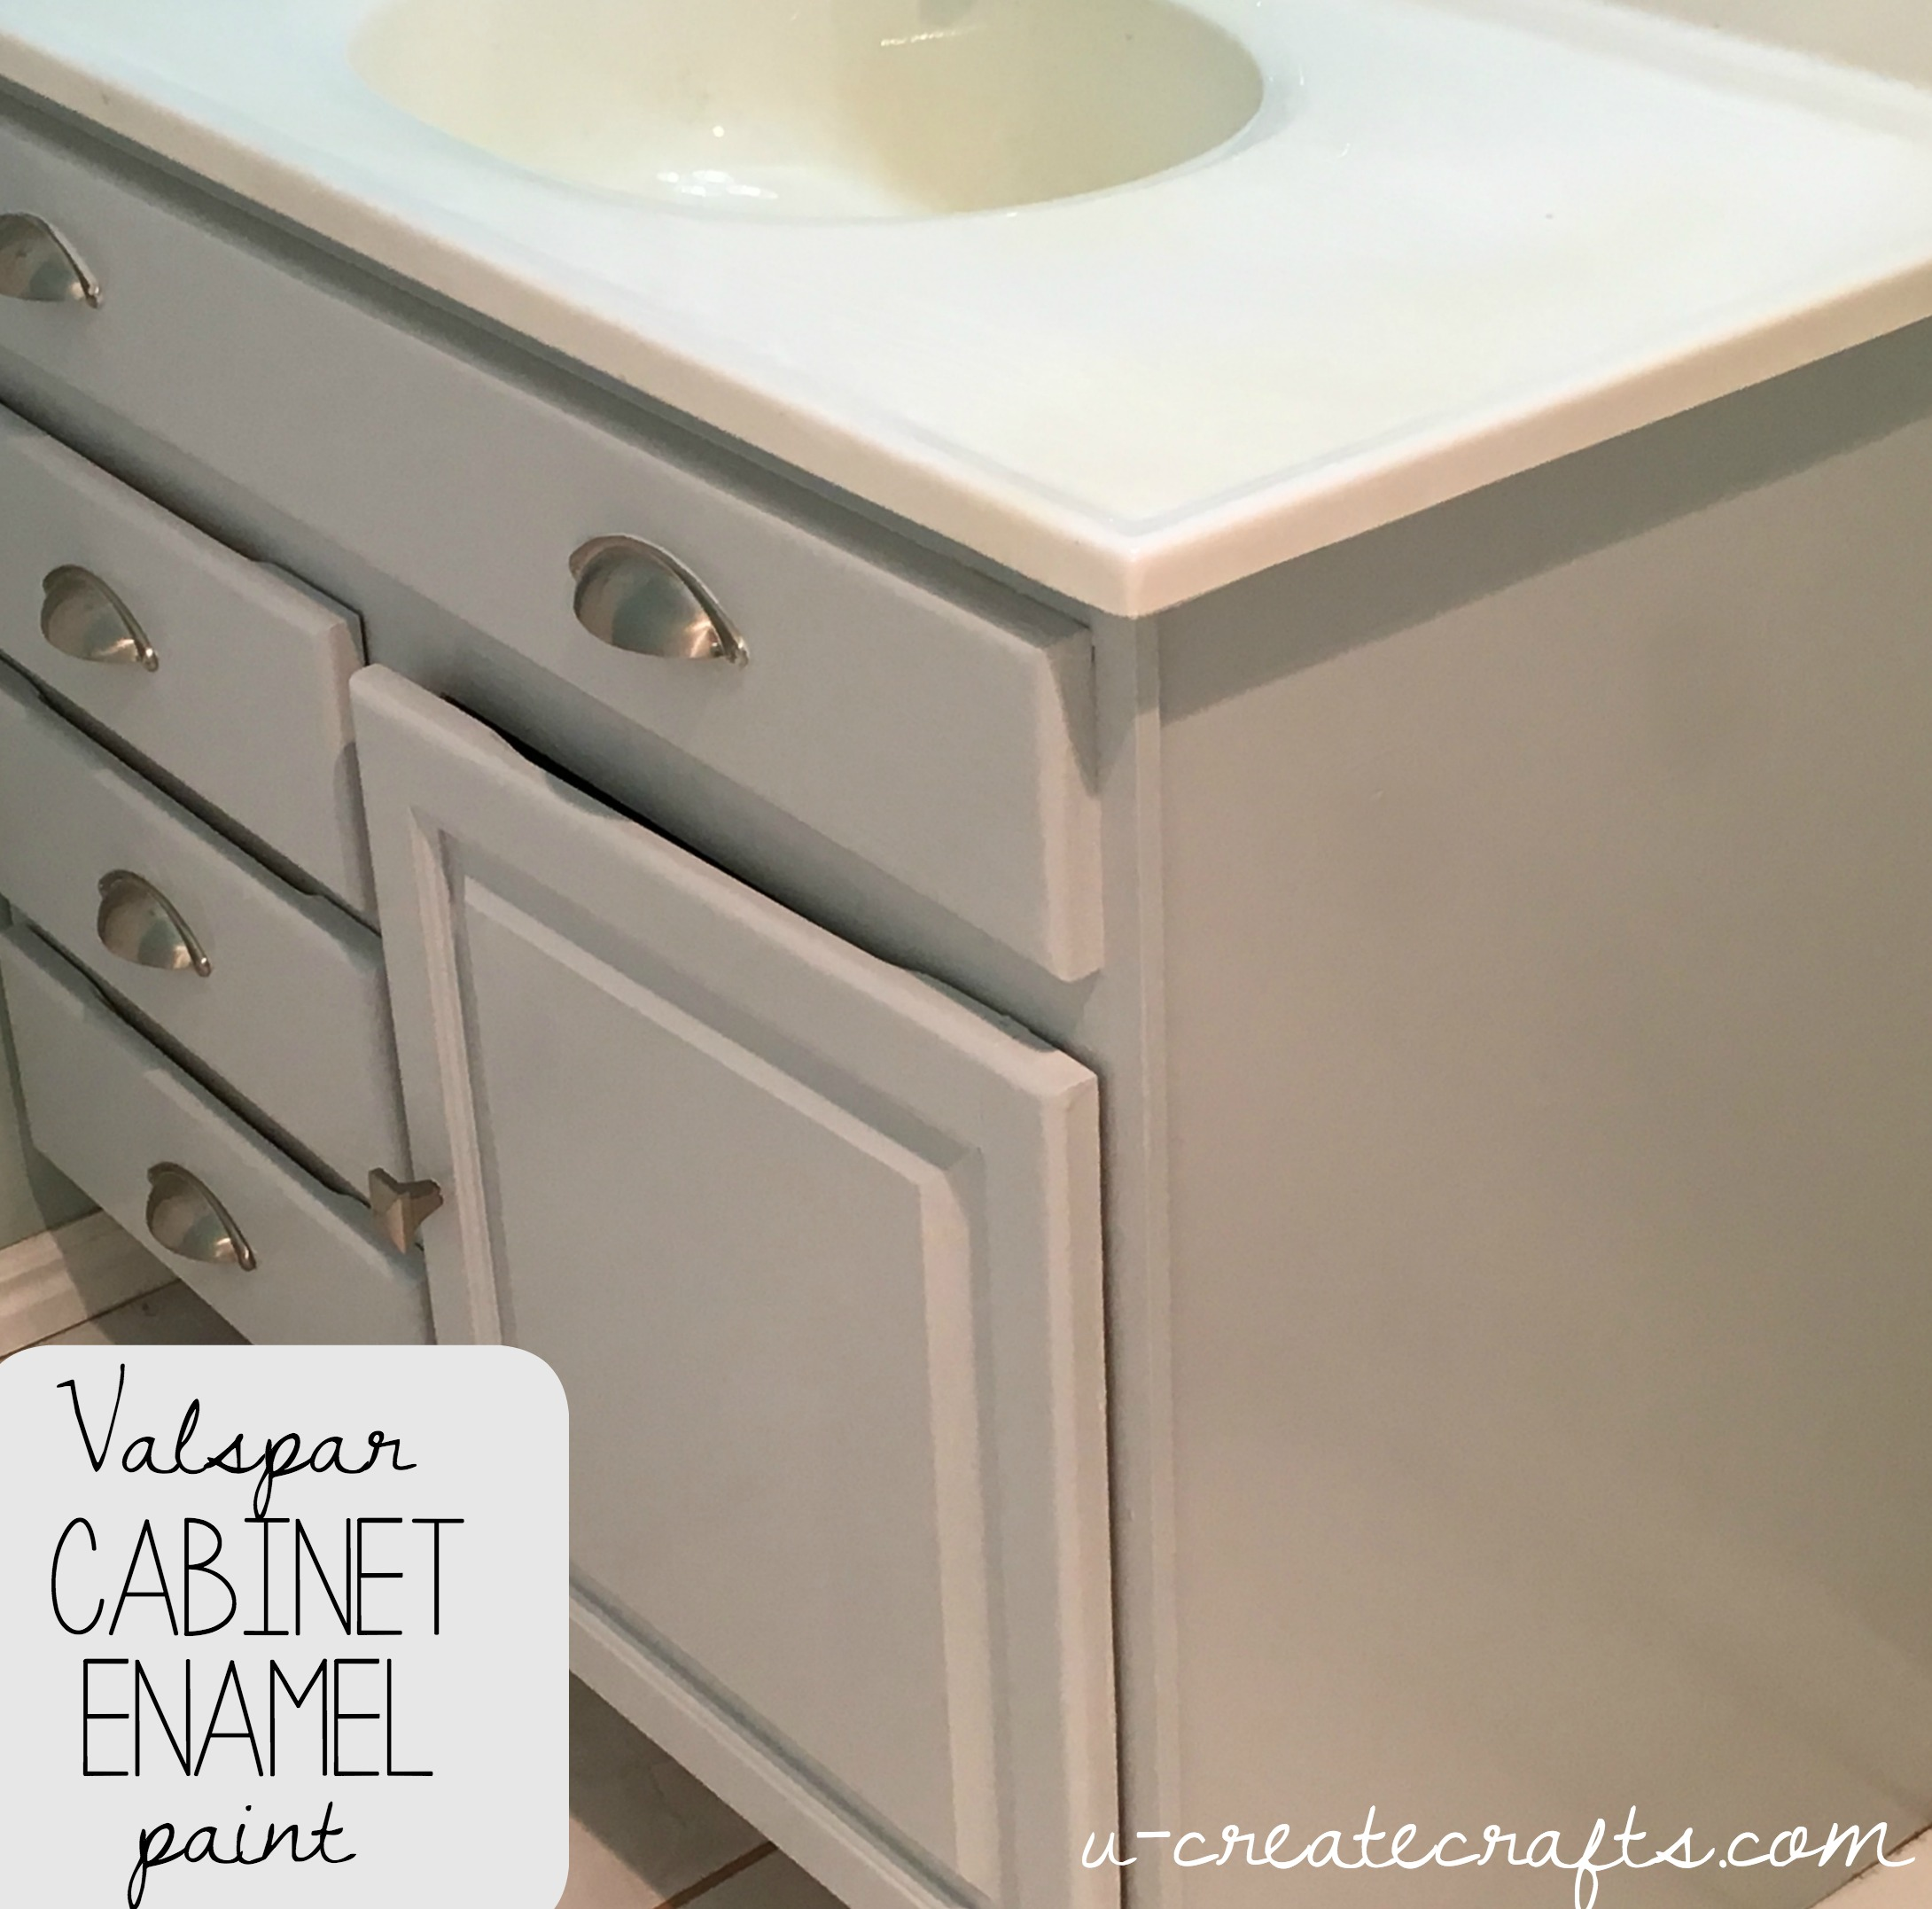 Best Kitchen Gallery: Valspar Cabi Enamel Paint U Create of Valspar Kitchen Cabinet Paint on rachelxblog.com